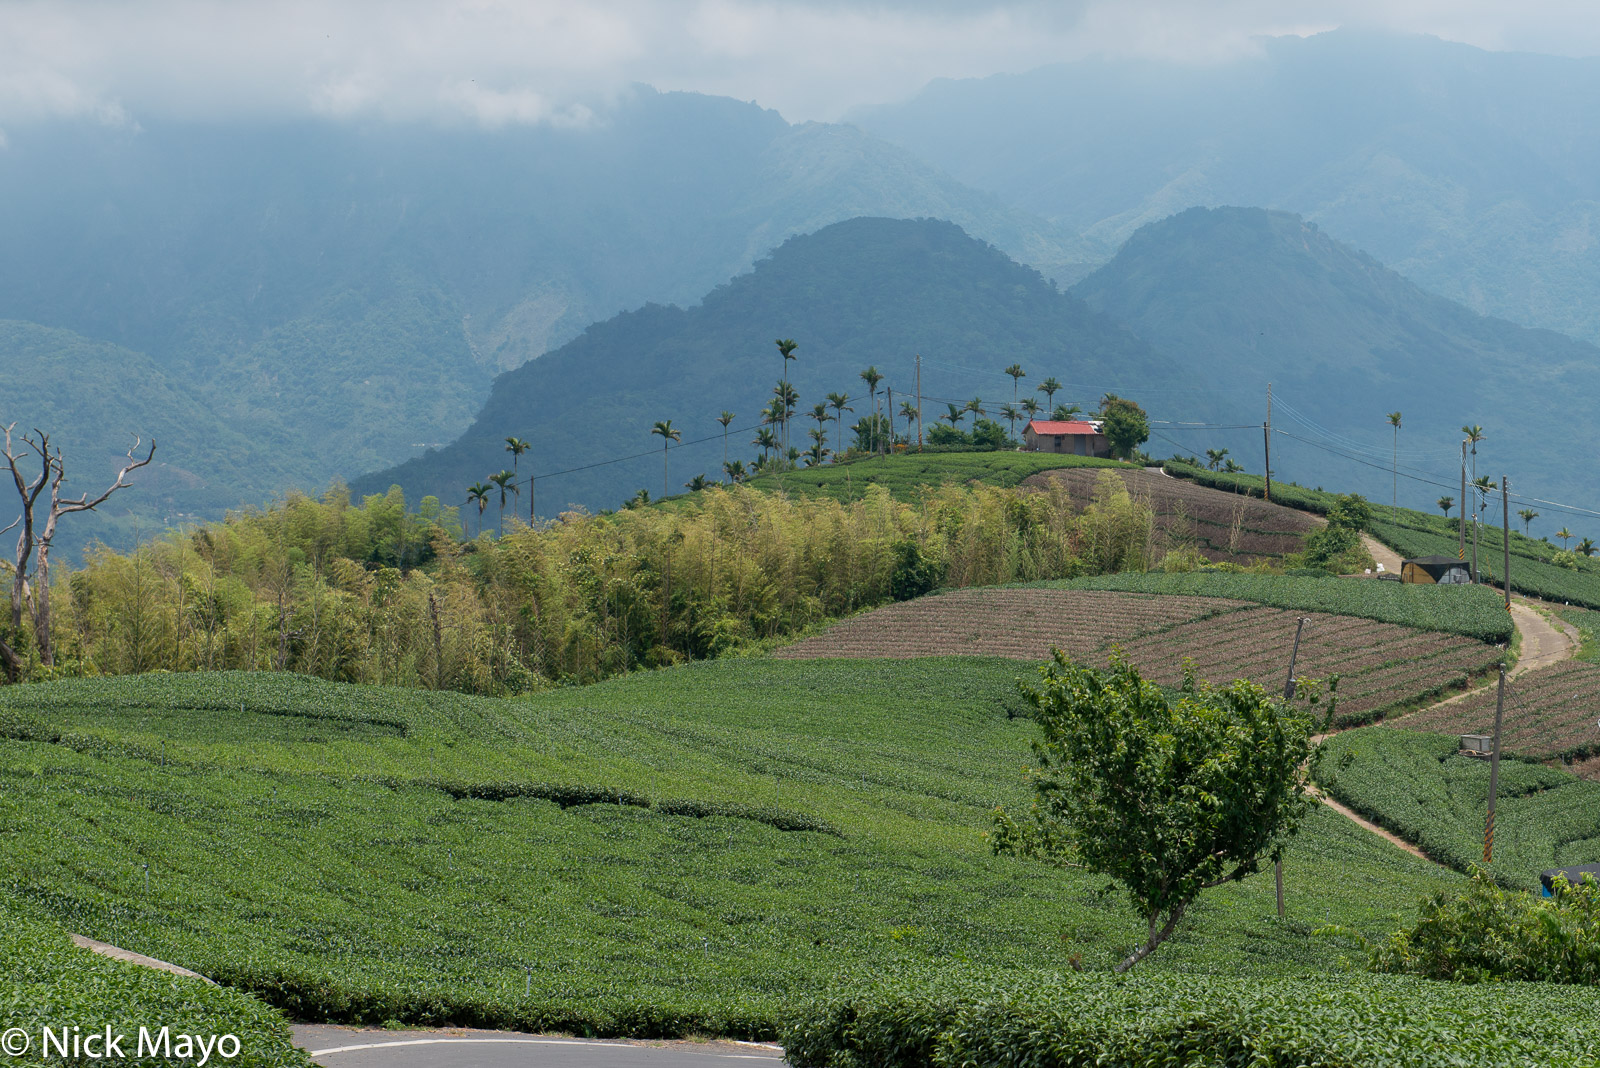 A bamboo grove between tea fields at the Bihushan tea plantation in Chiayi County.